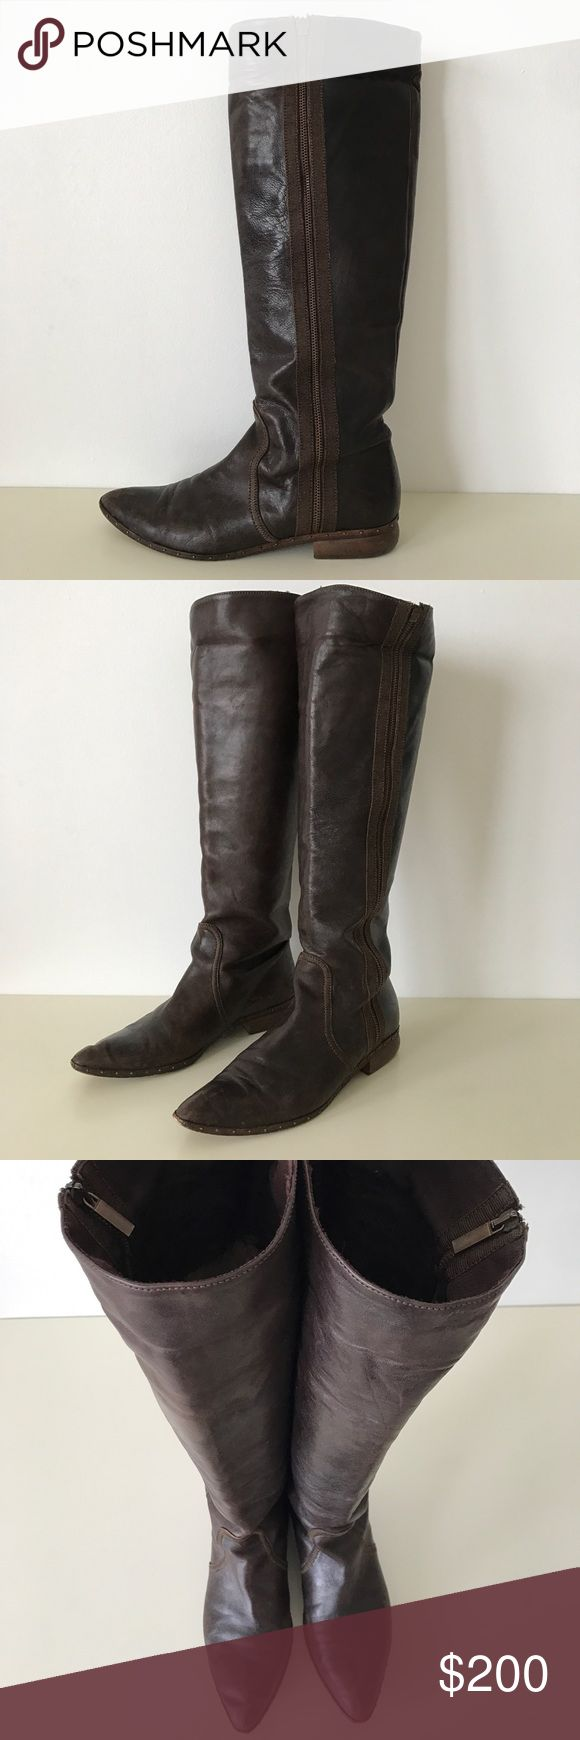 """Just Cavalli Leather Distressed Boots SZ 38.5 Brown leather intentionally distressed boots with zippers on the outside. Zippers open about 1/4 of the way from the top. 1"""" stacked heel. 17"""" shaft. All leather outsole adorned with small nail heads. Inside is lined with """"Just Cavalli"""" fabric  1/4 through the top, the rest is leather. Could be worn folded over at the top or tall. Made in Italy. Size 38.5. Light scuffing on the inside of the right boot but barely noticeable due to distressed…"""